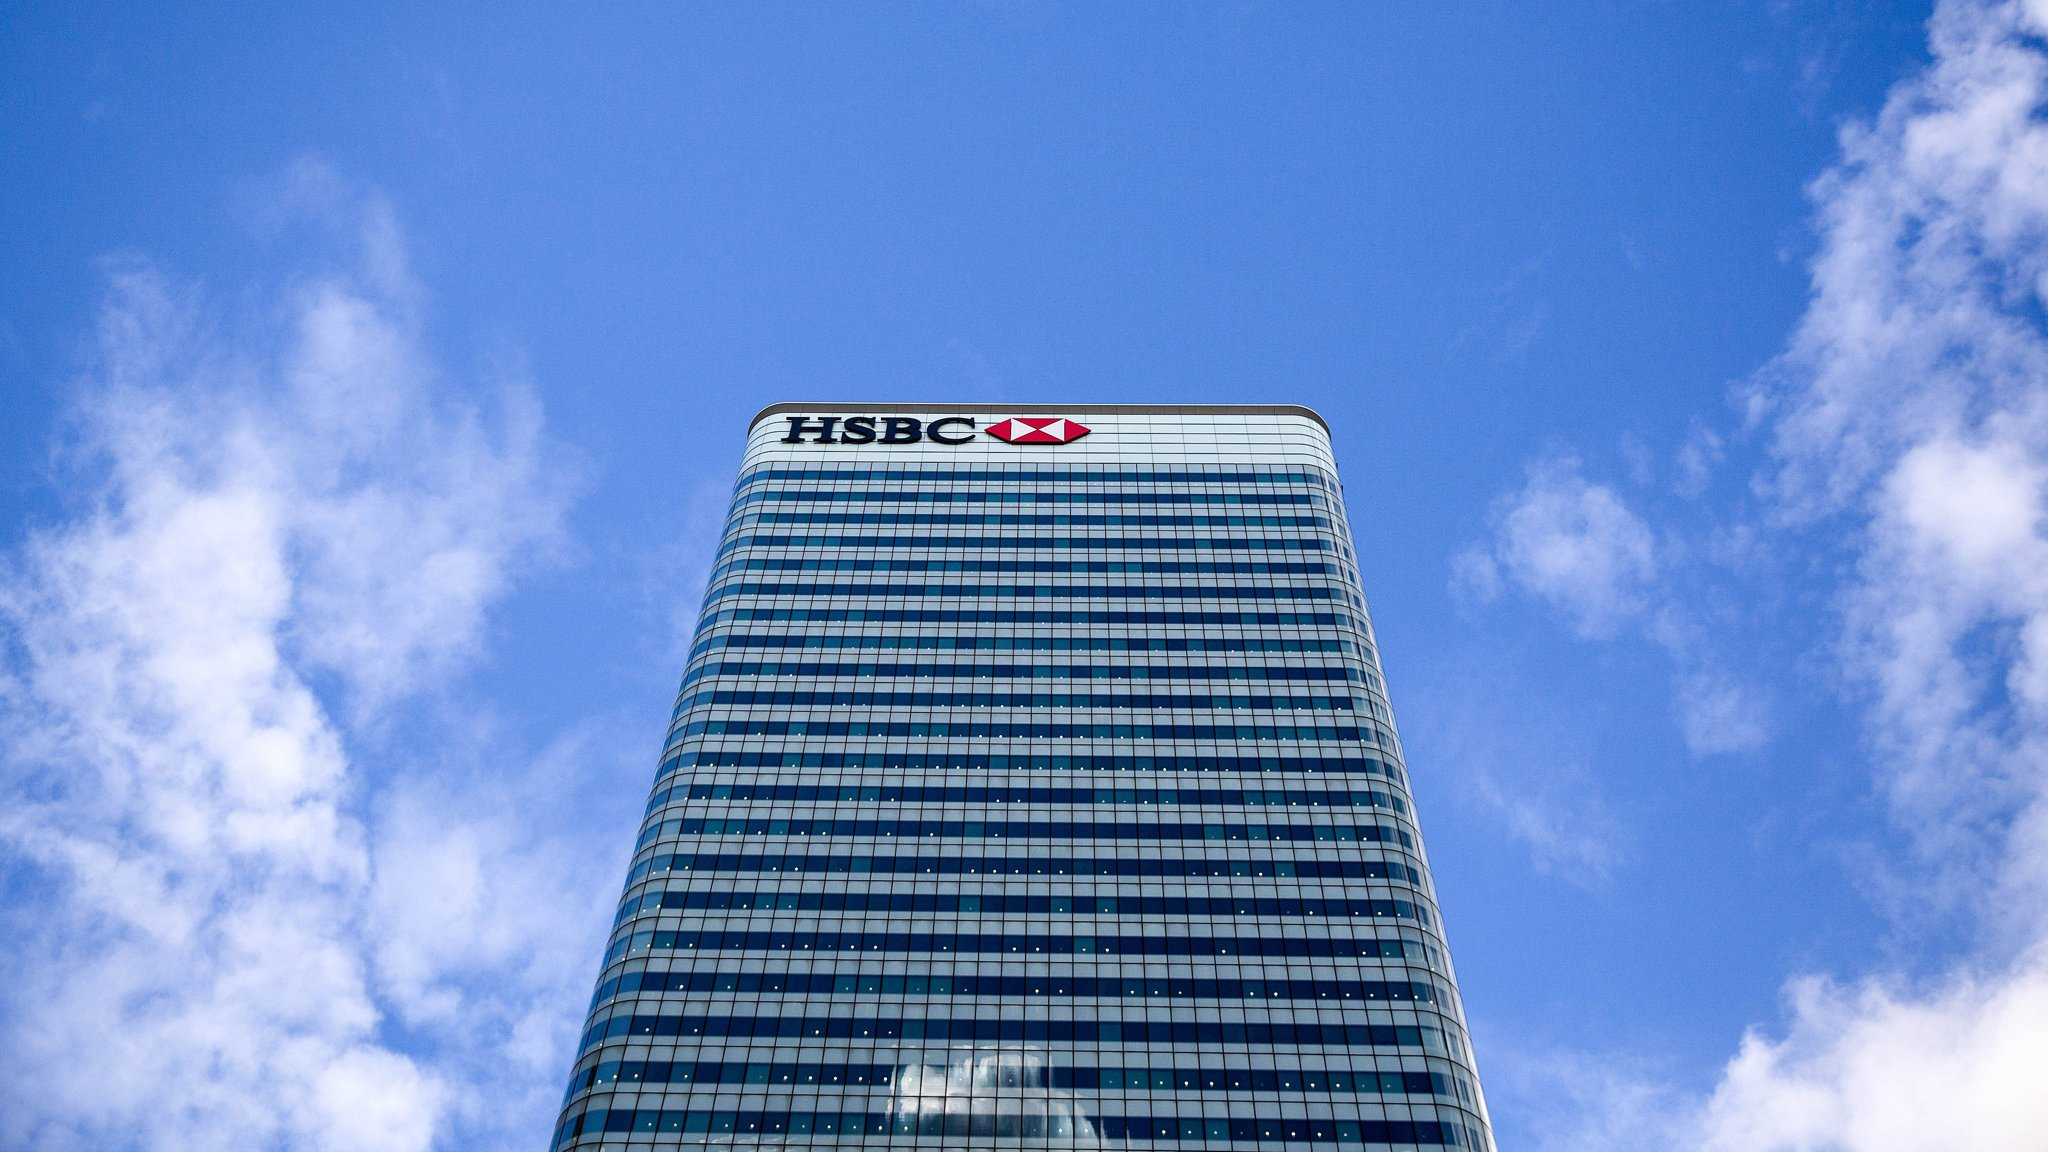 Relief for London as HSBC decides to stay | Financial Times